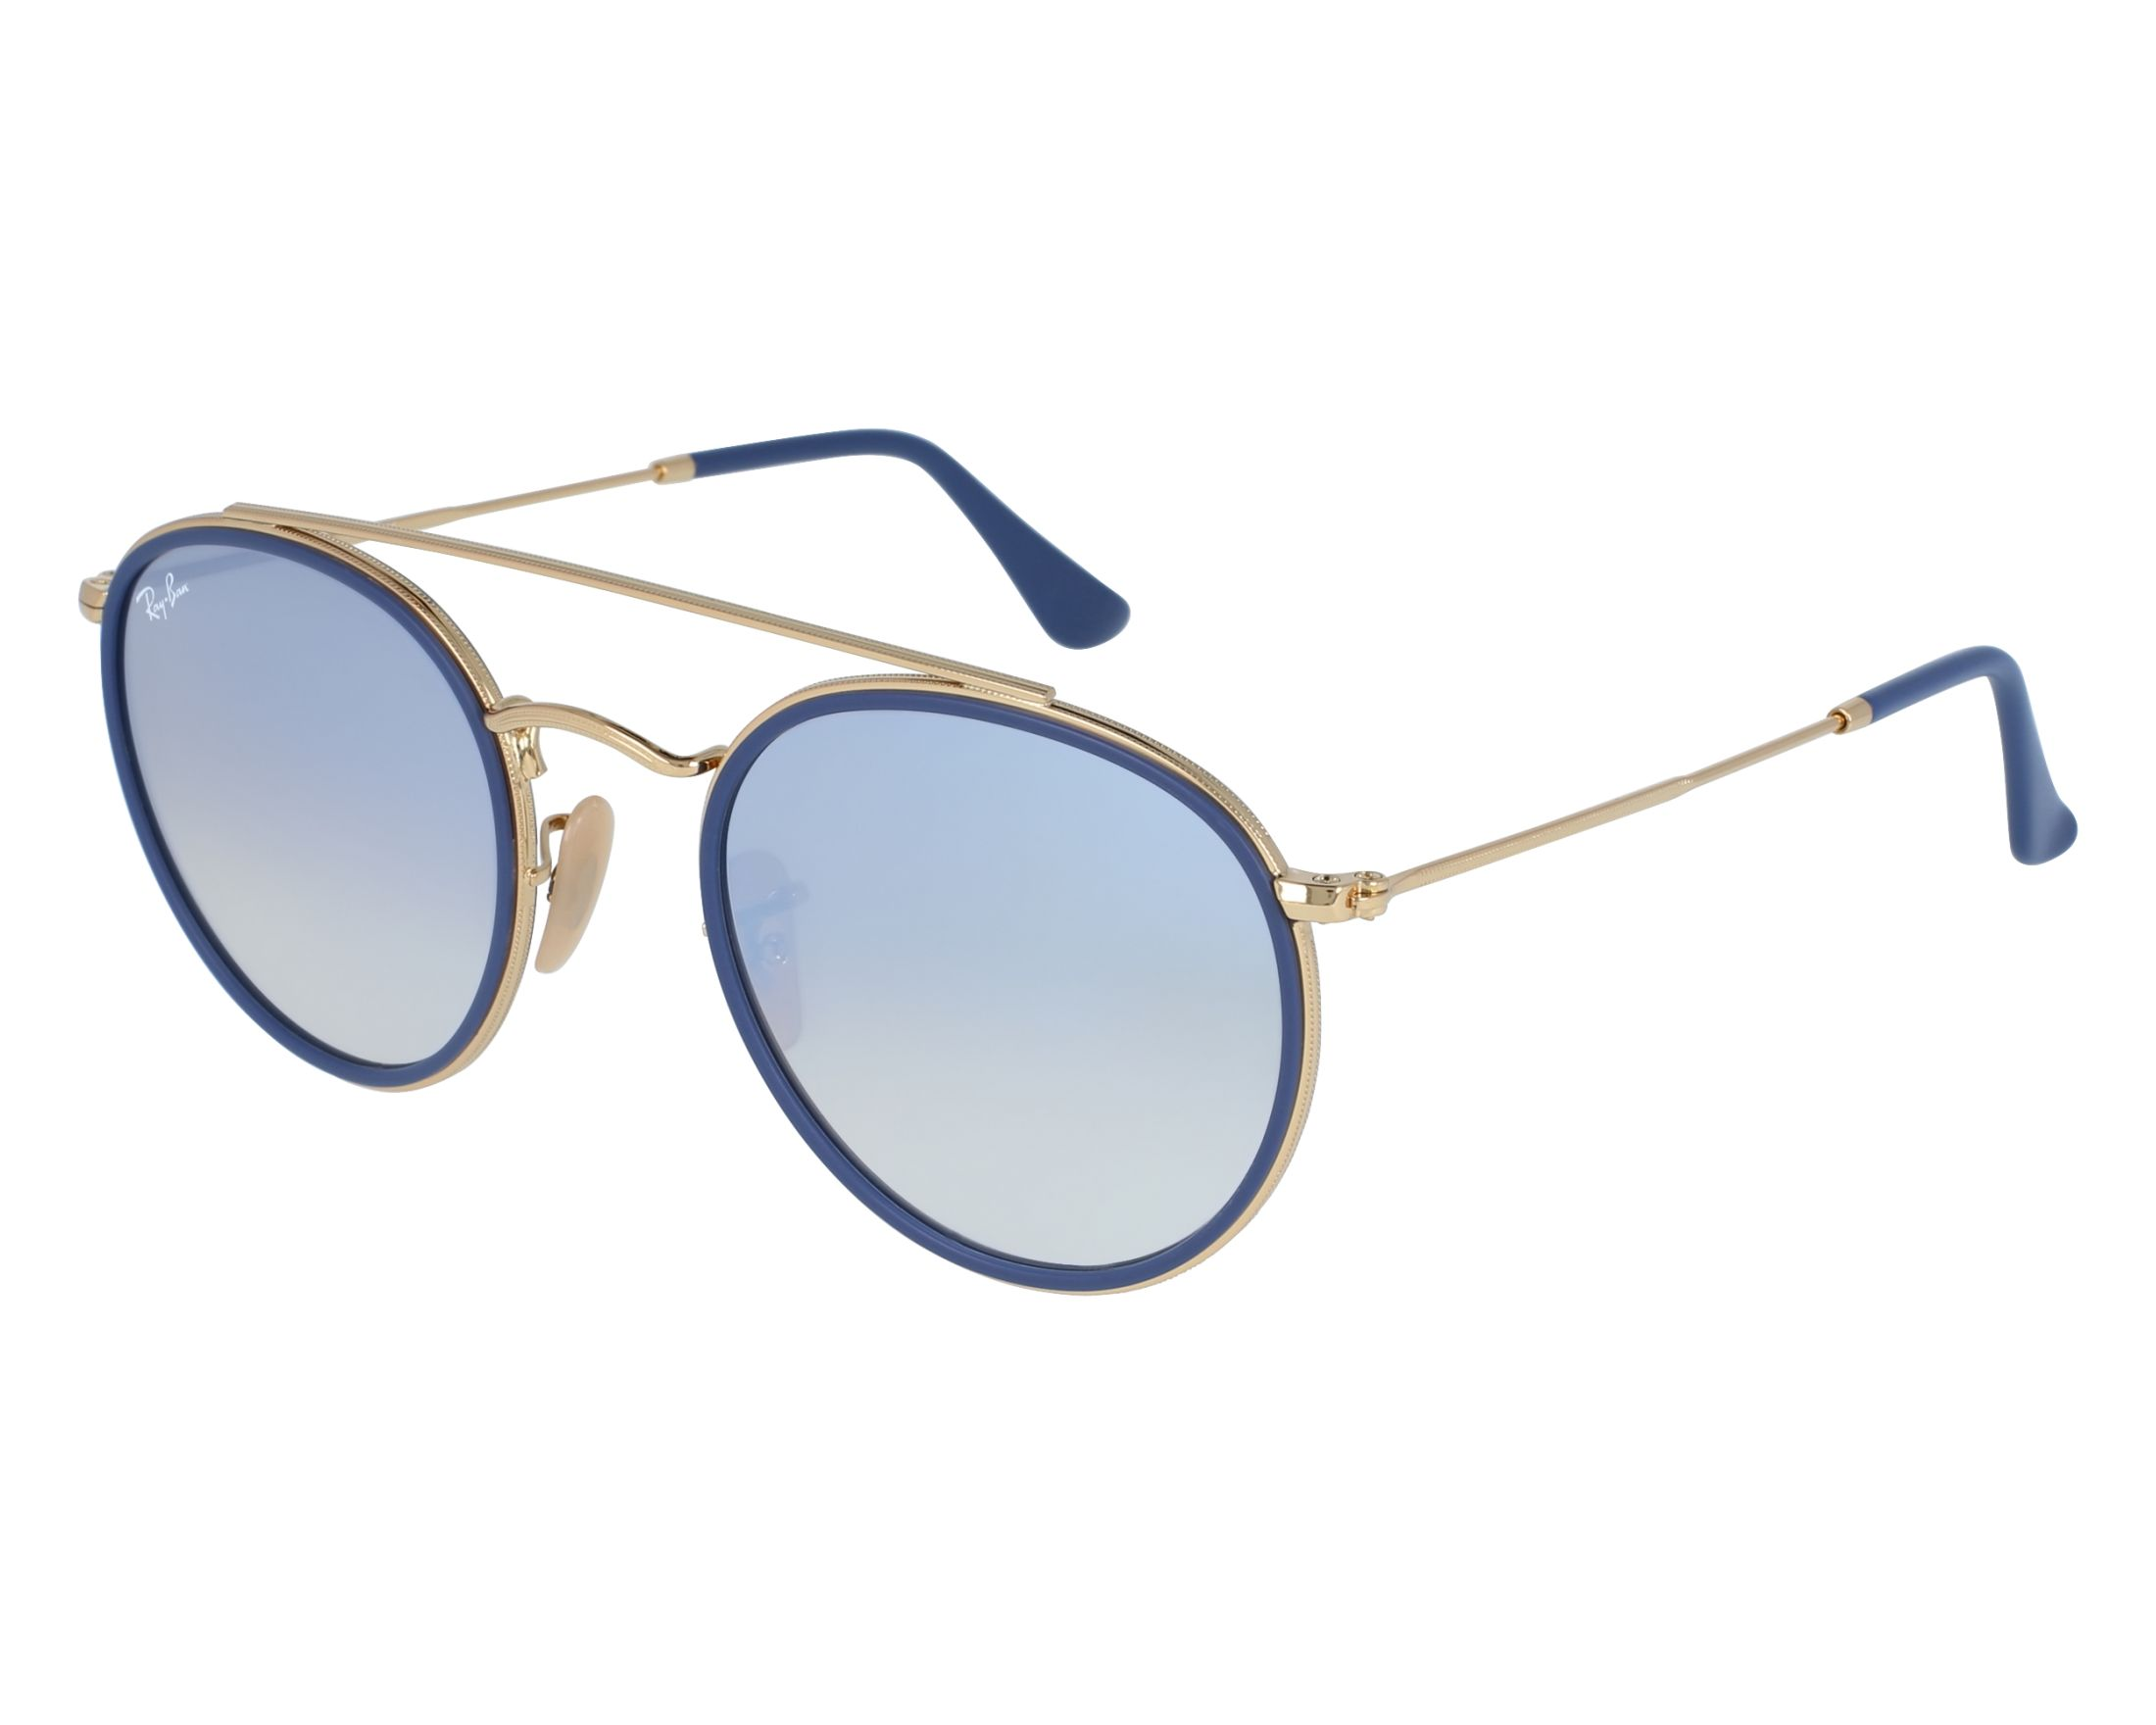 1a3b4e1404 ... official store sunglasses ray ban rb 3647 n 001 9u 51 22 gold c6c6a  0952a